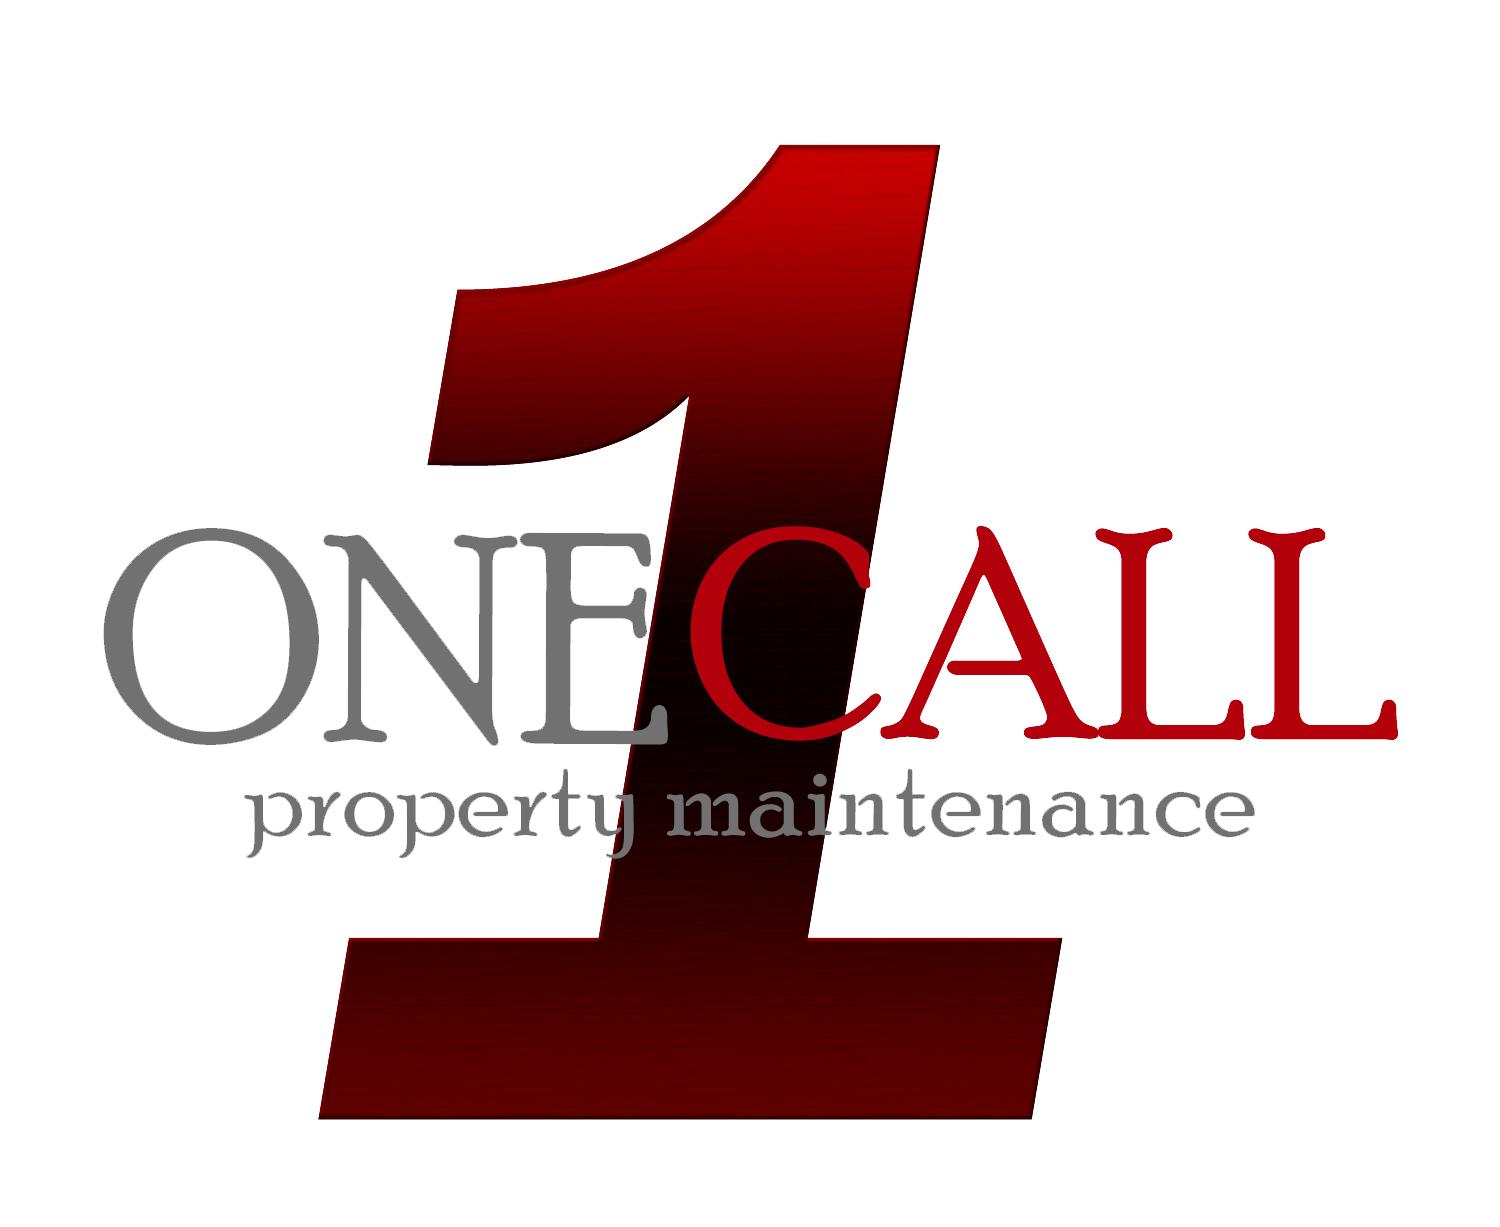 One Call Property Maintenance